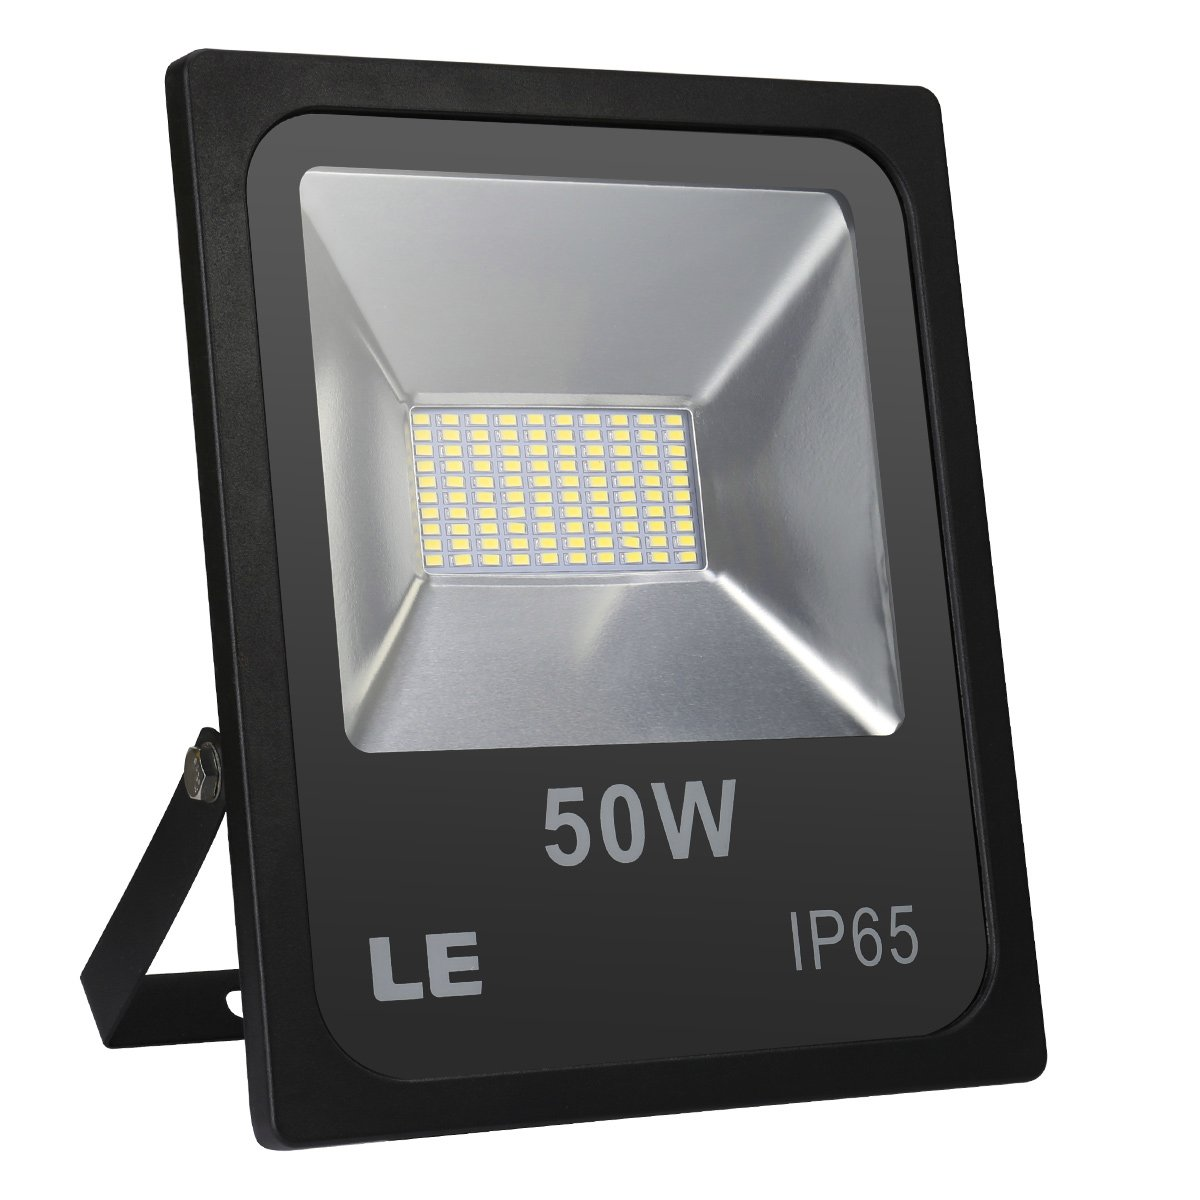 LE 50W 4000lm Super Bright Outdoor LED Flood Lights, Daylight White 6000K, 150W HPSL Equivalent, Waterproof, Security Lights, Indoor & Outdoor Floodlight. (No Plug)